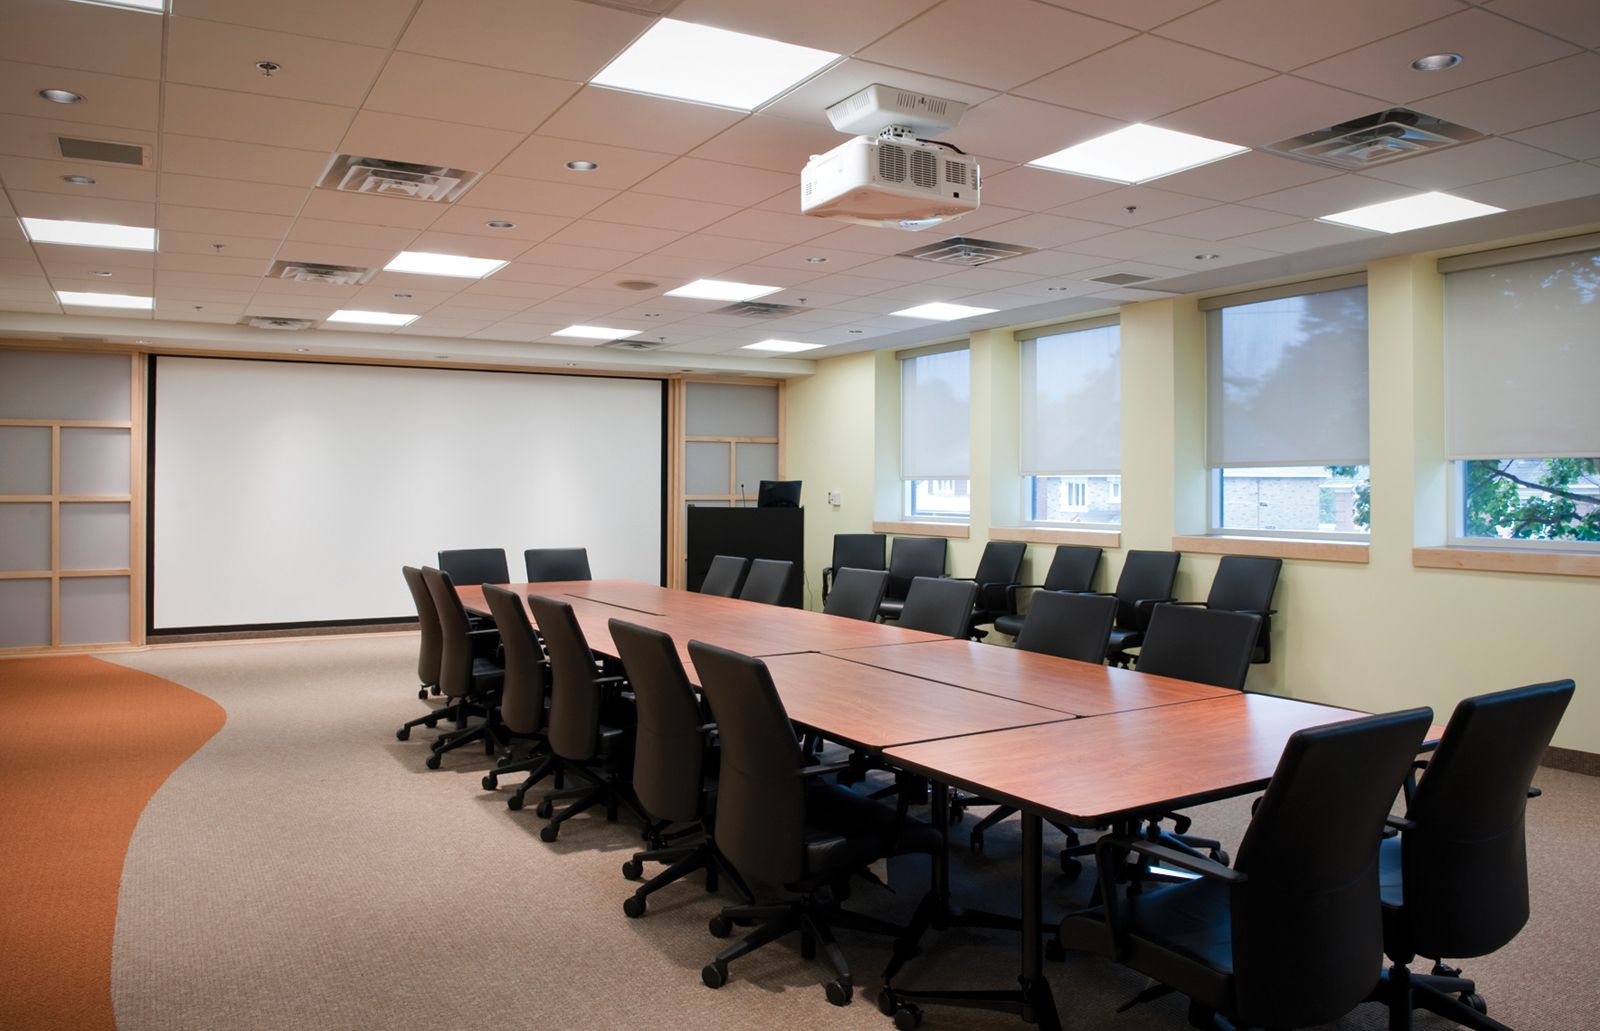 Good Lighting Conference Rooms Interior Design Ideas For